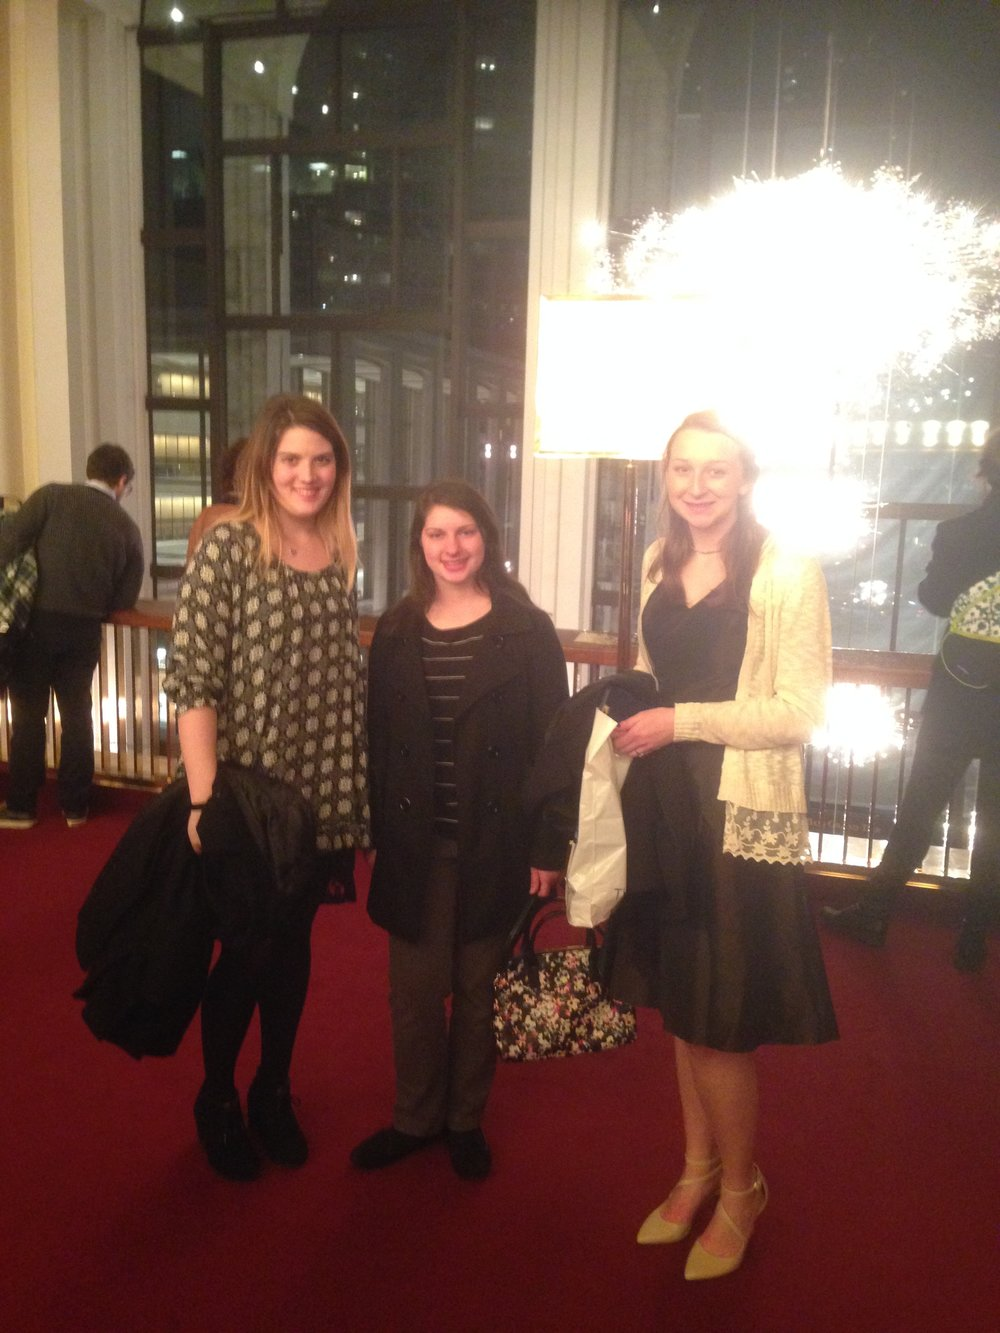 Students getting ready to see Mozart's Marriage of Figaro at Met